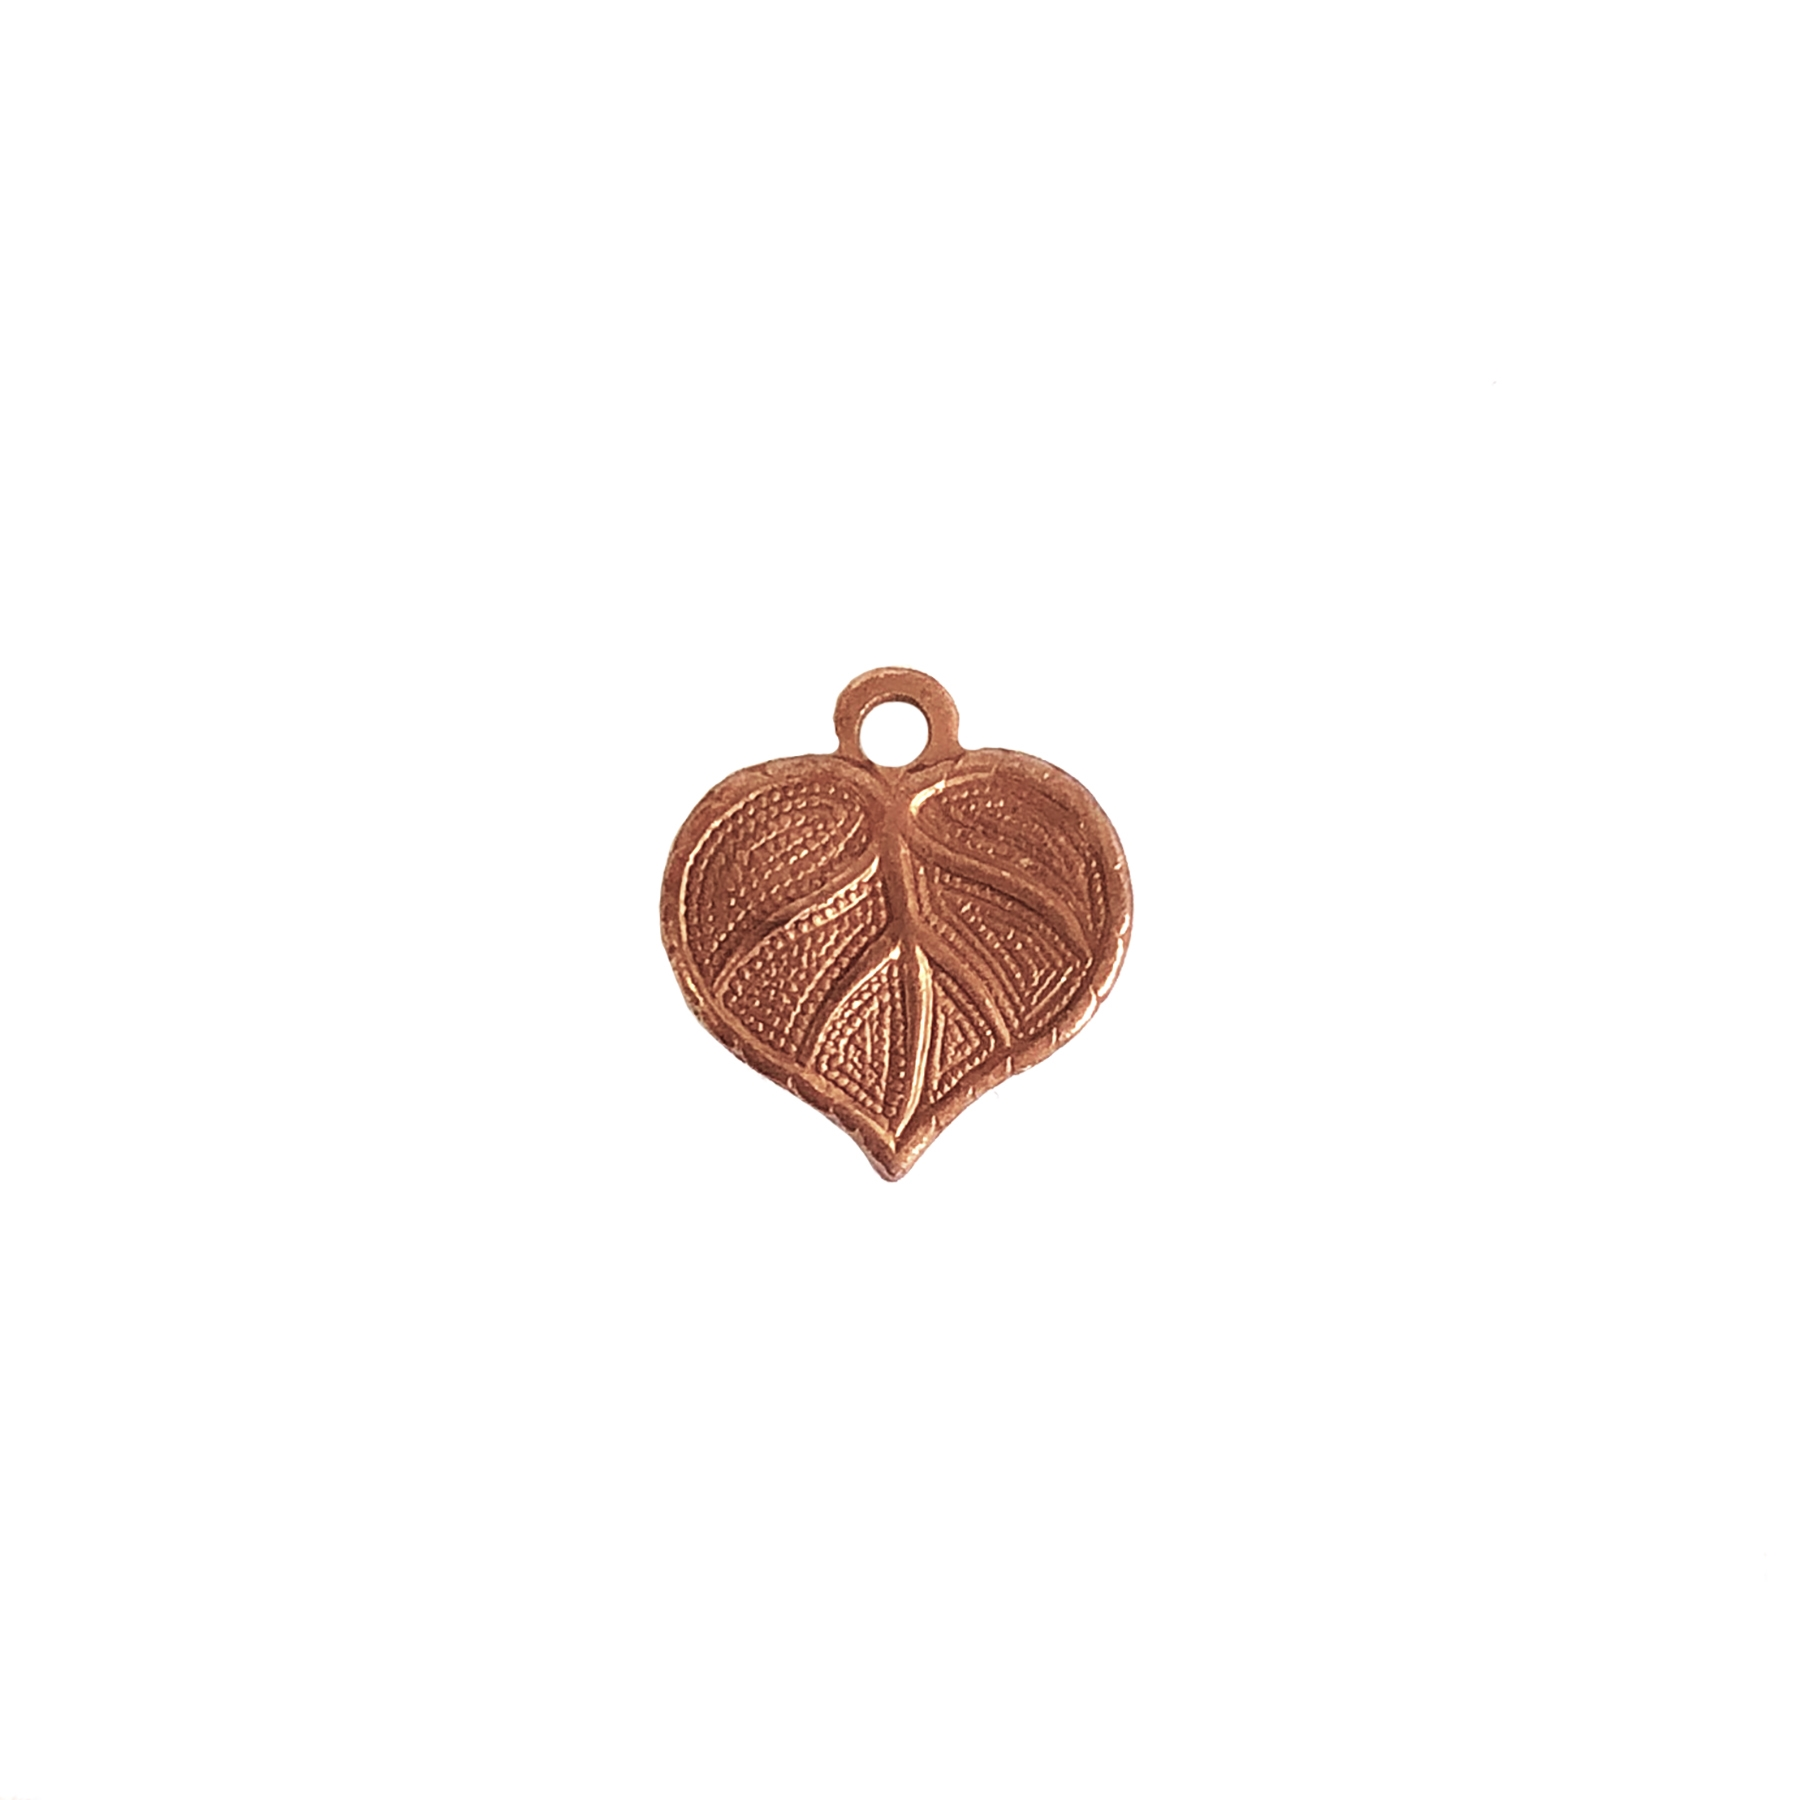 brass leaf charms, brass leaves,  charm accents, gingerbread brass, jewelry making supplies, vintage jewelry supplies, antique copper, US-made, nickel-free, bsueboutiques, leaf charms, 0760, 13x12mm